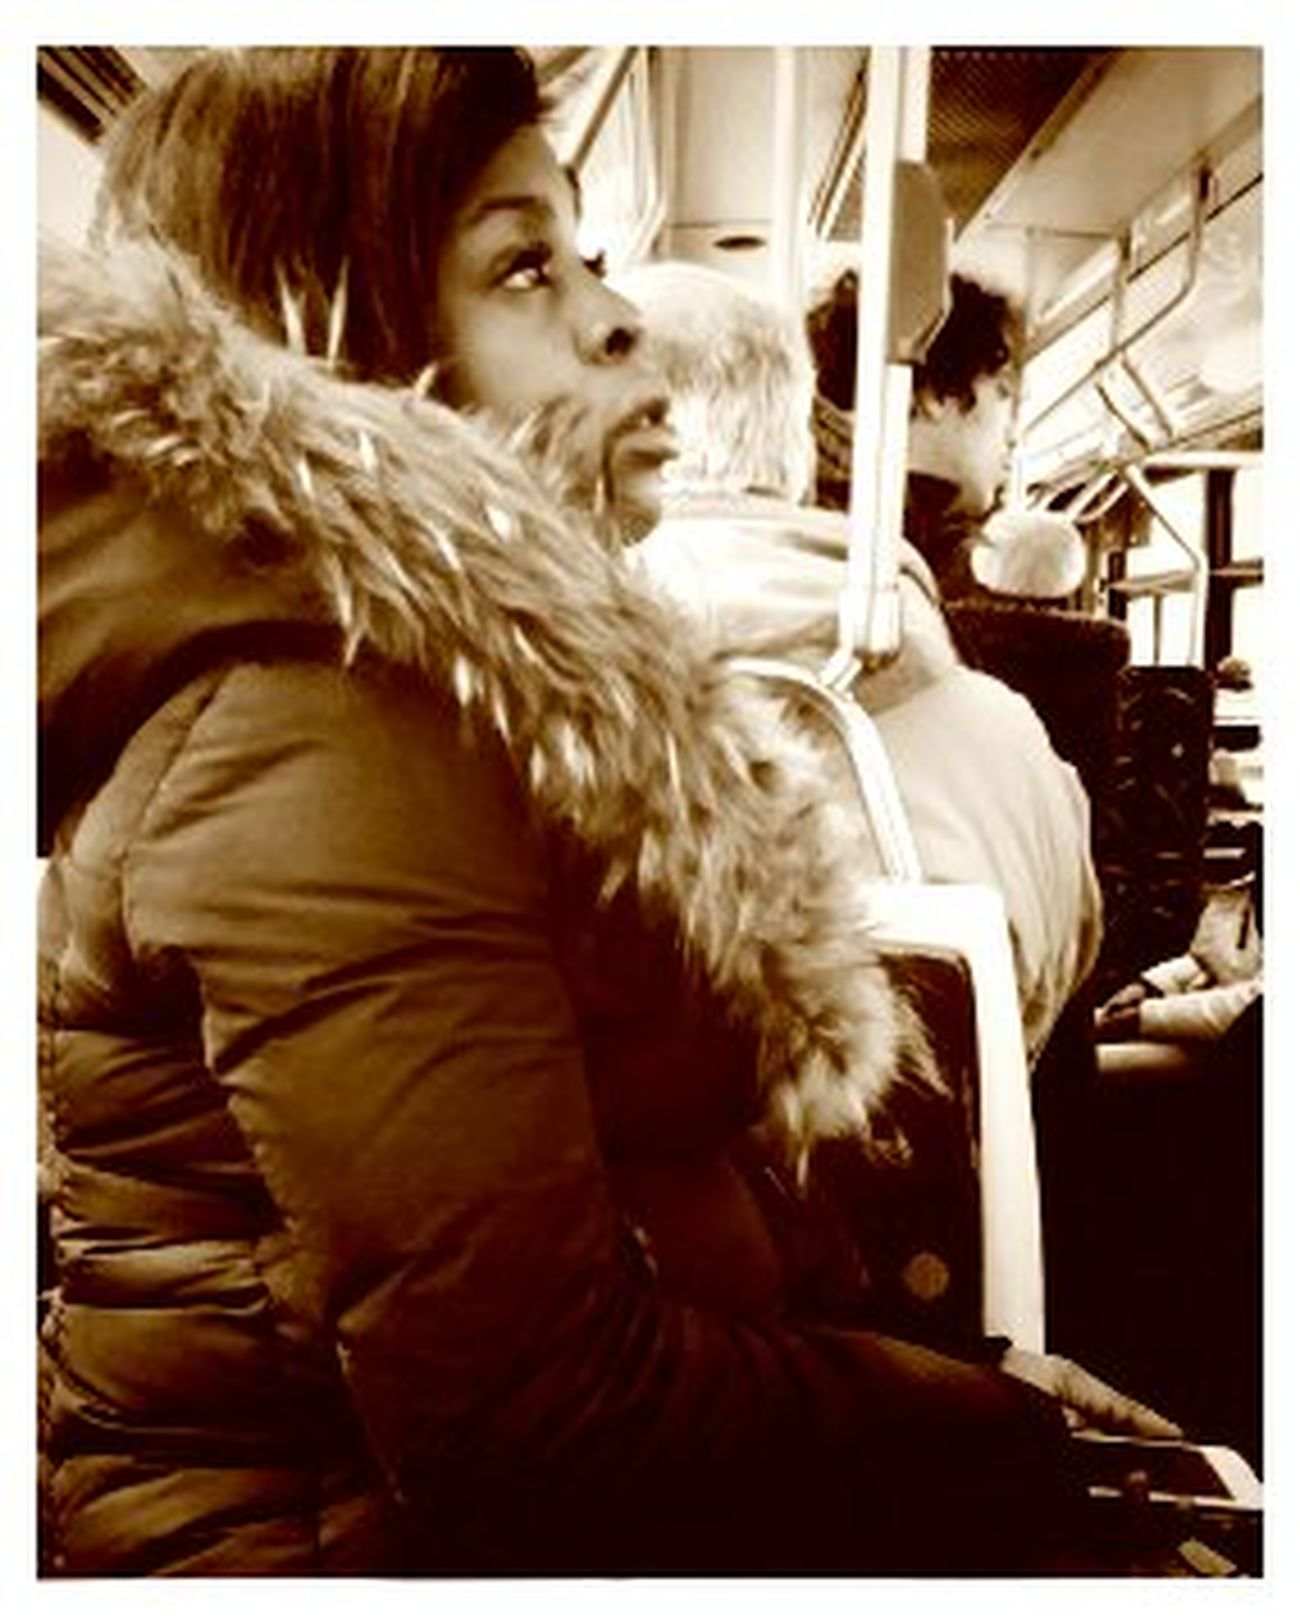 People Photography People Around You People In Transit People In Bus